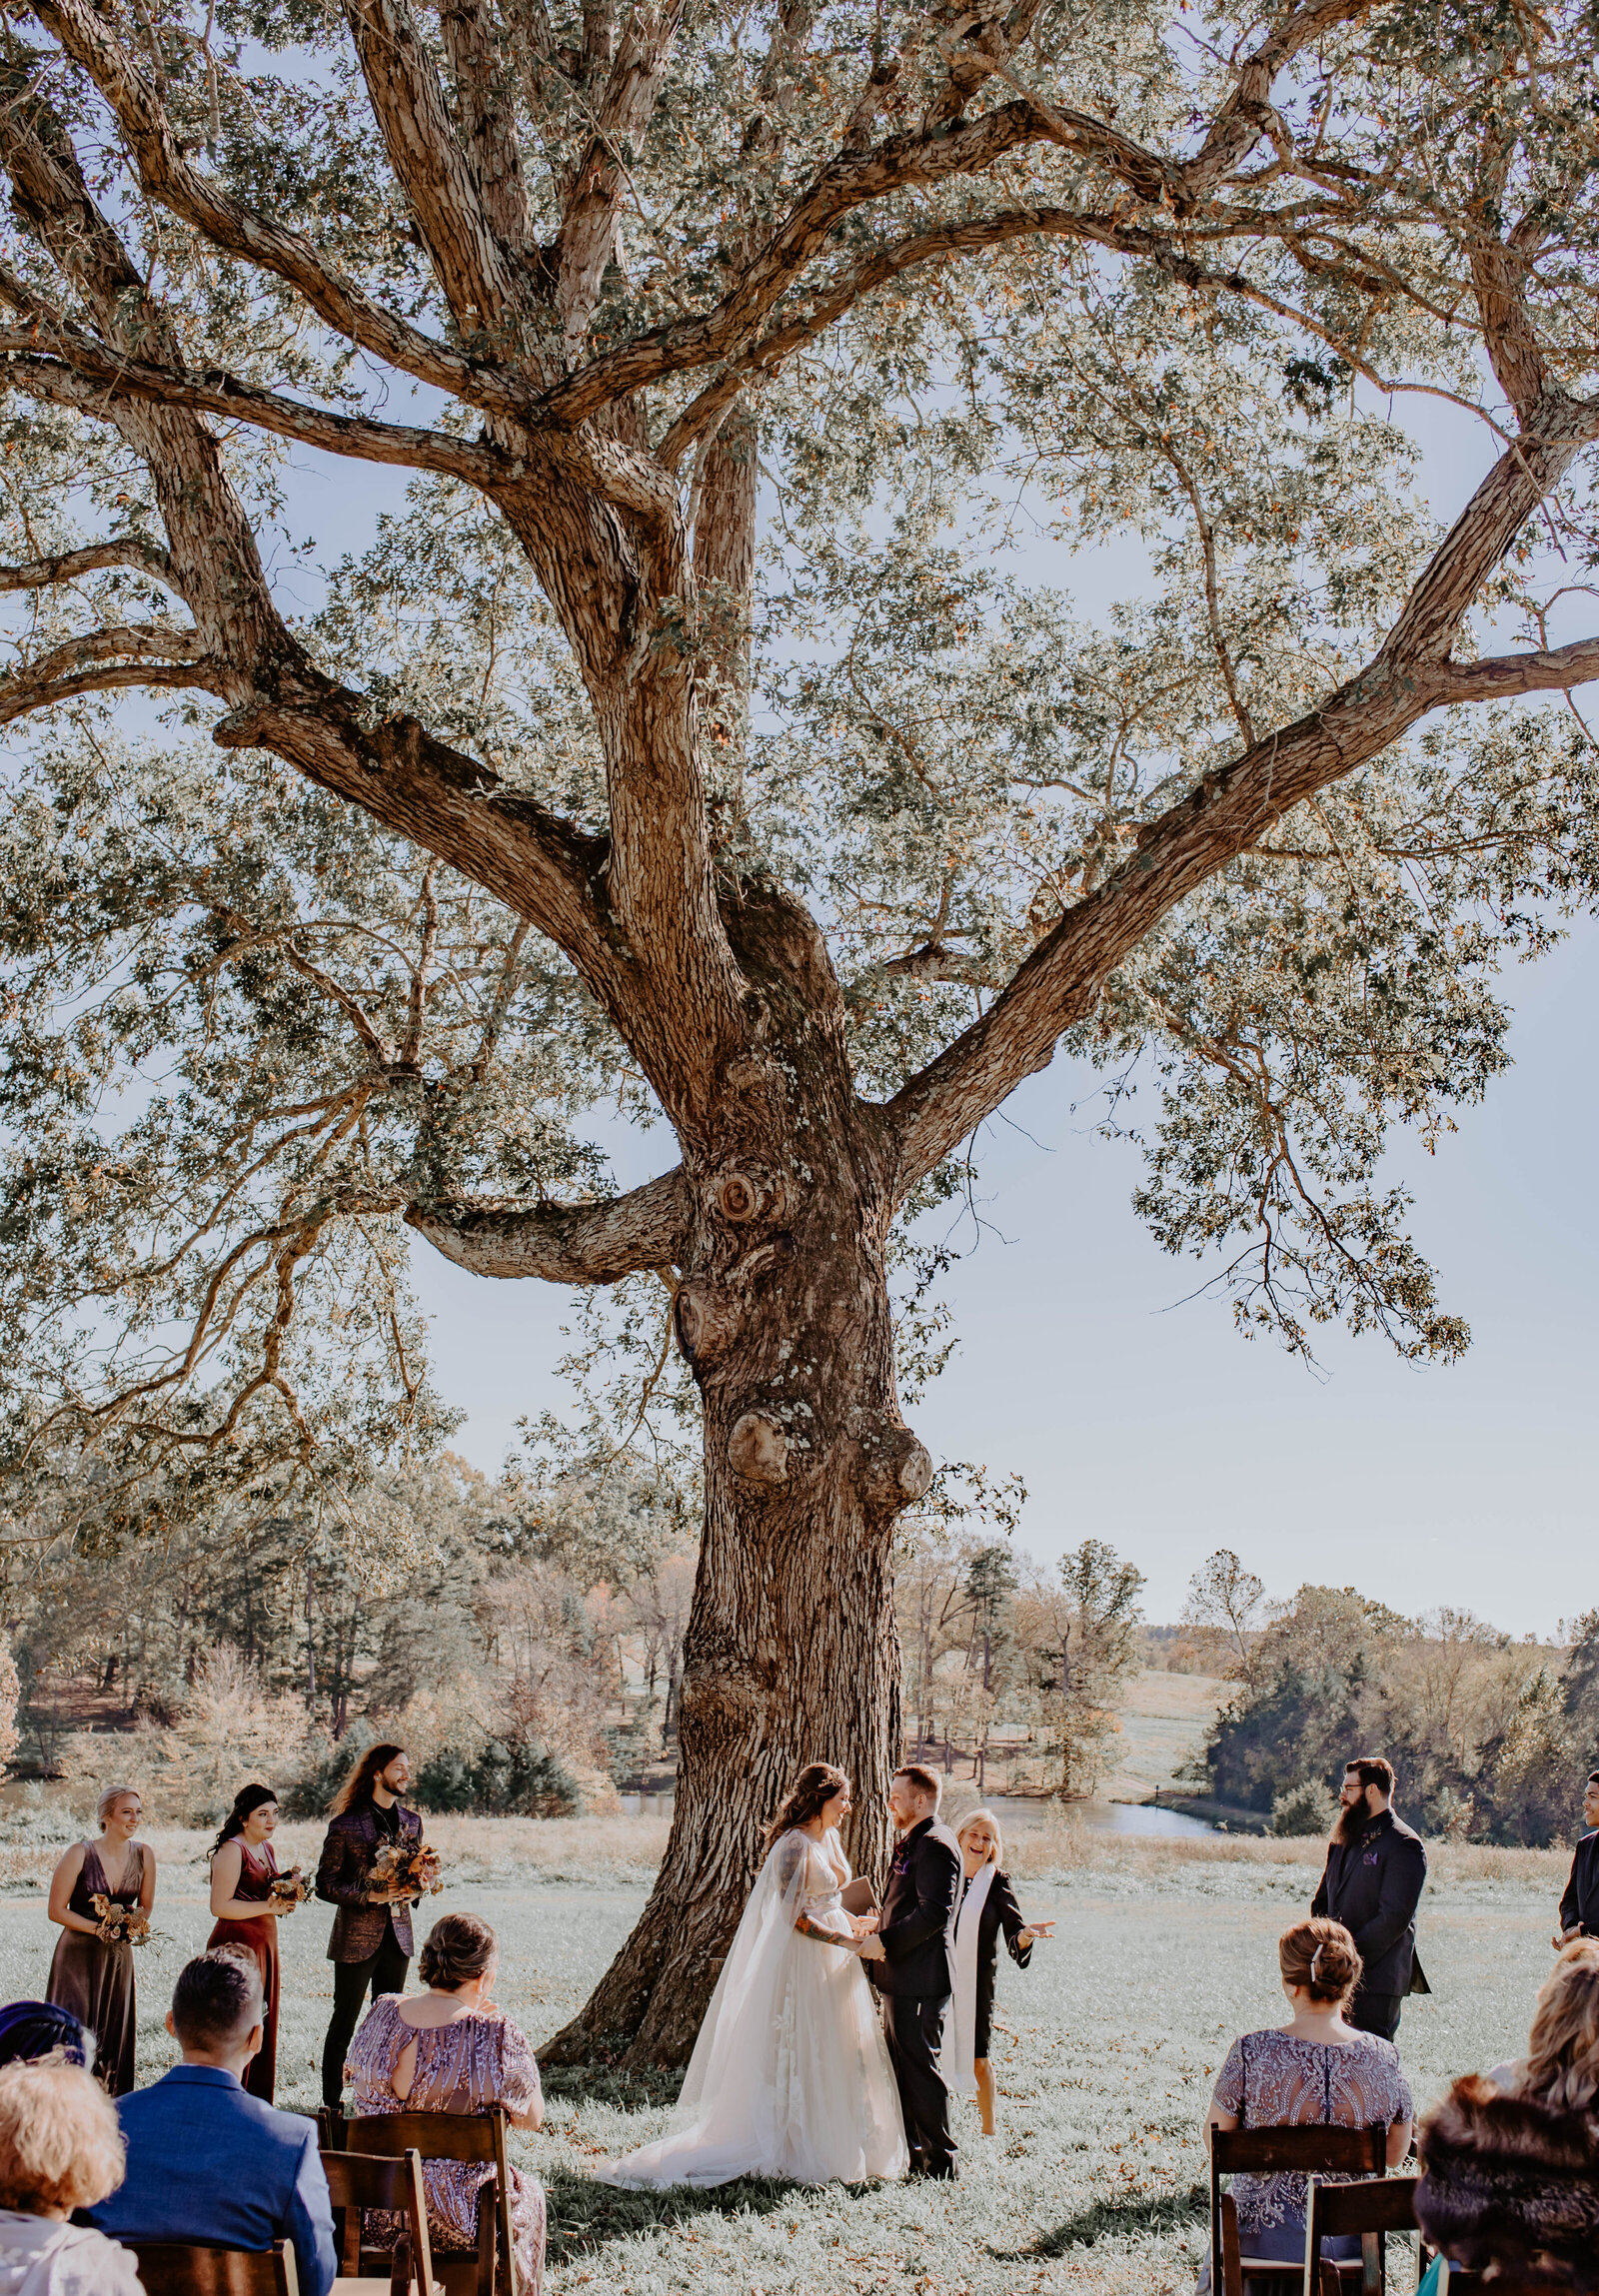 Intimate wedding ceremony in front of huge tree at Summerfield Farms, Summerfield NC